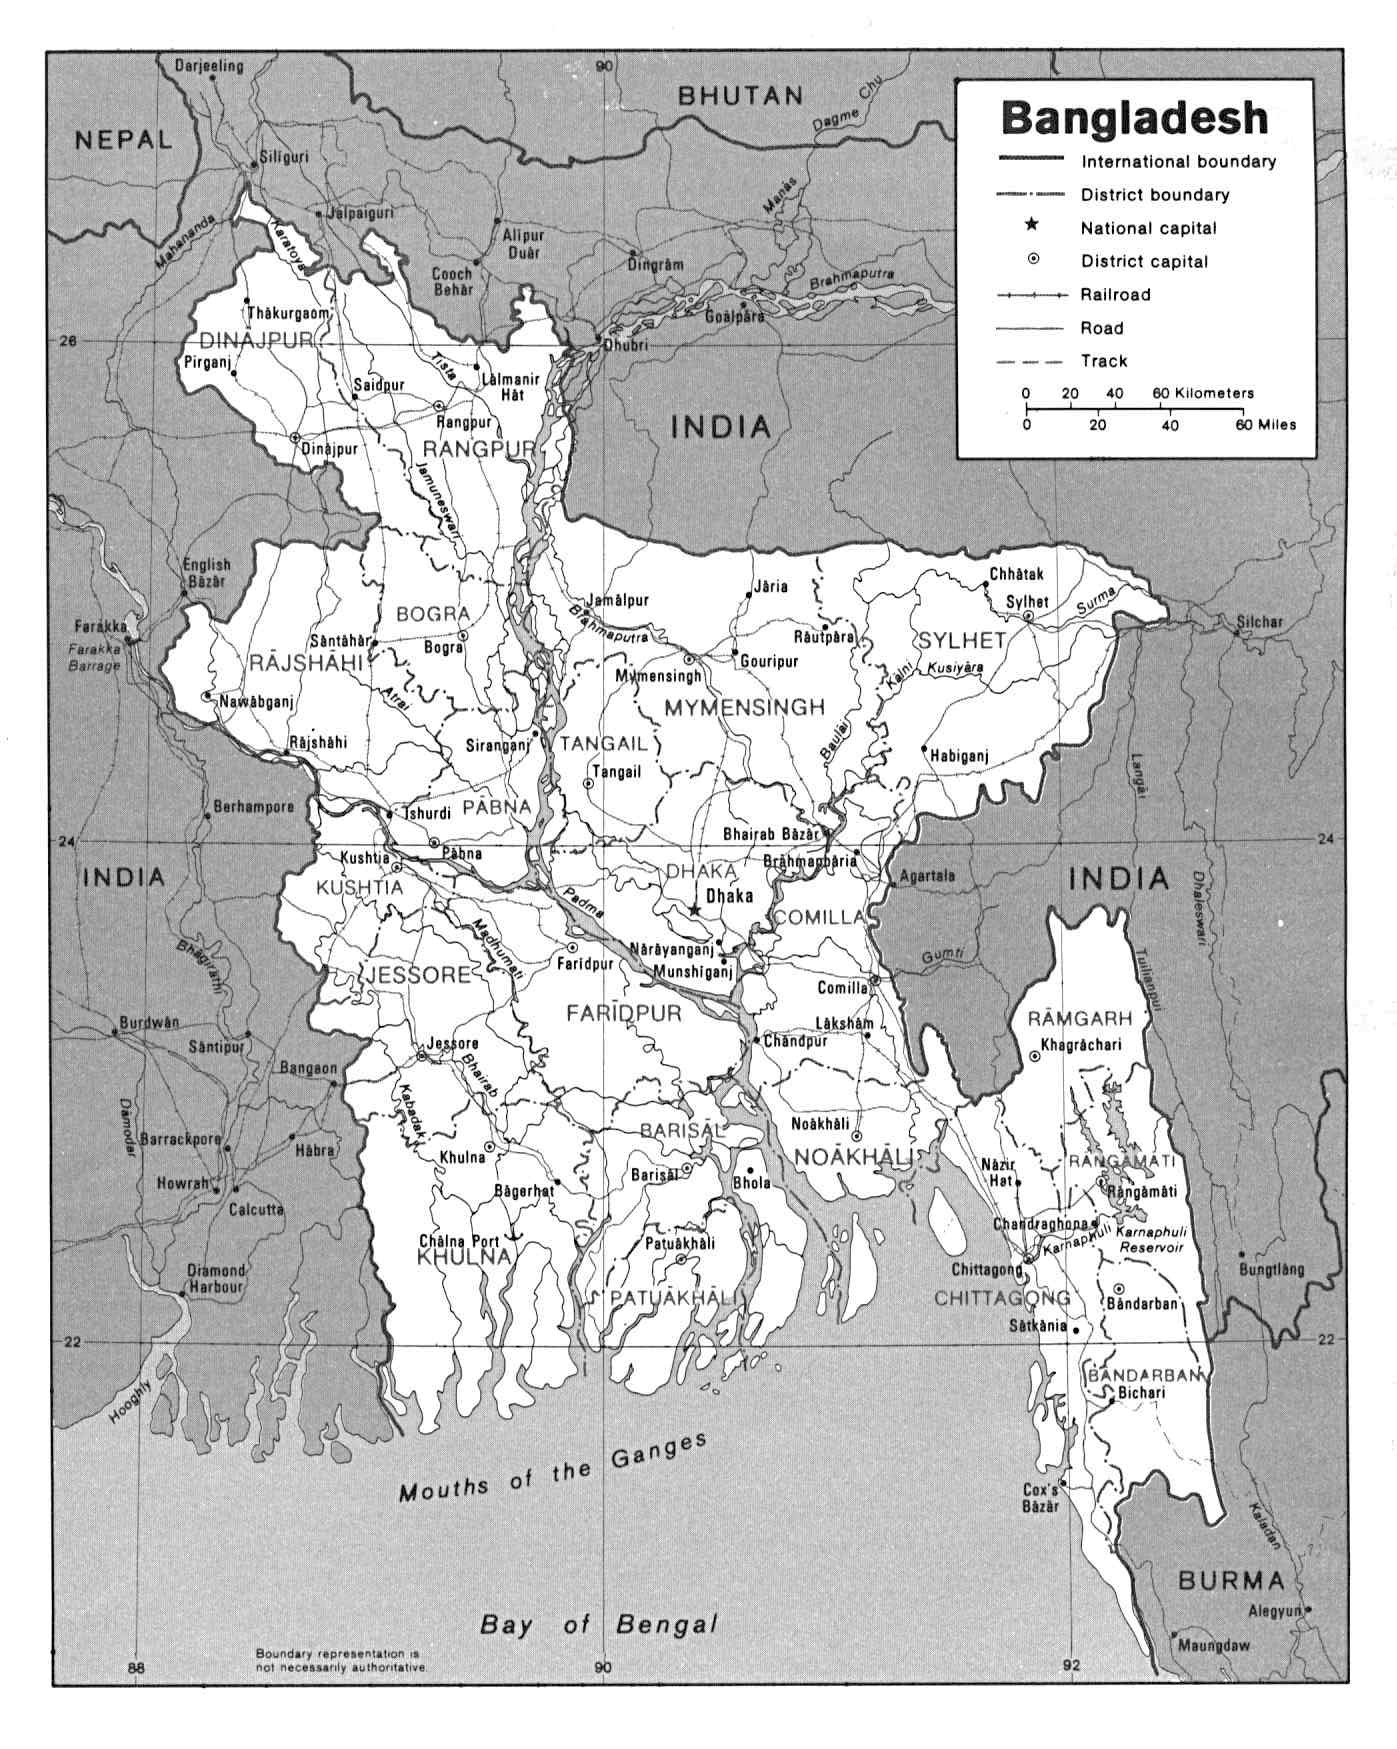 Political And Administrative Map Of Bangladesh With